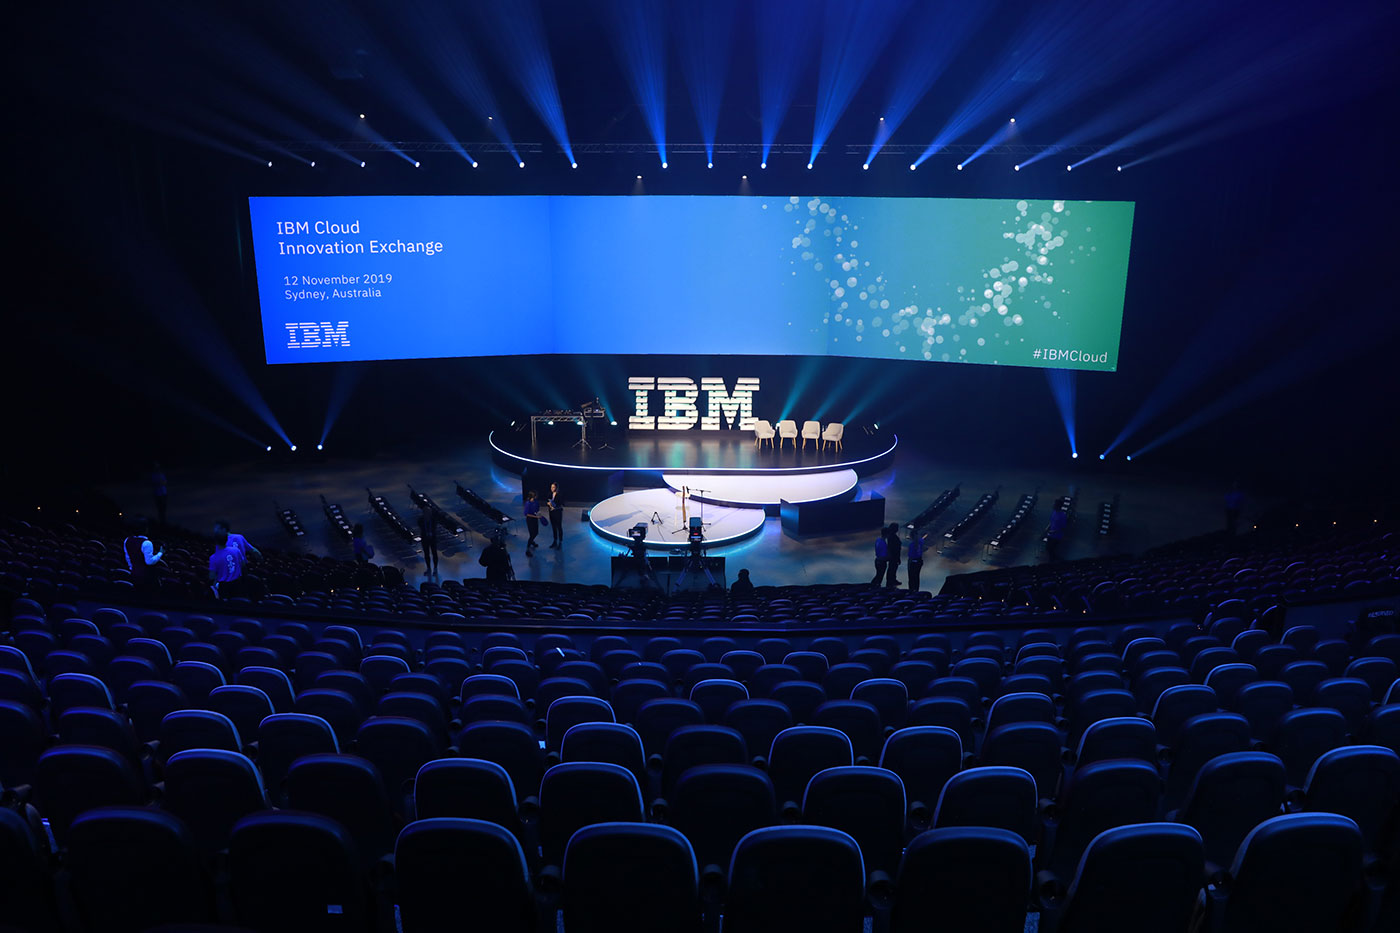 Conference for IBM at Sydney ICC